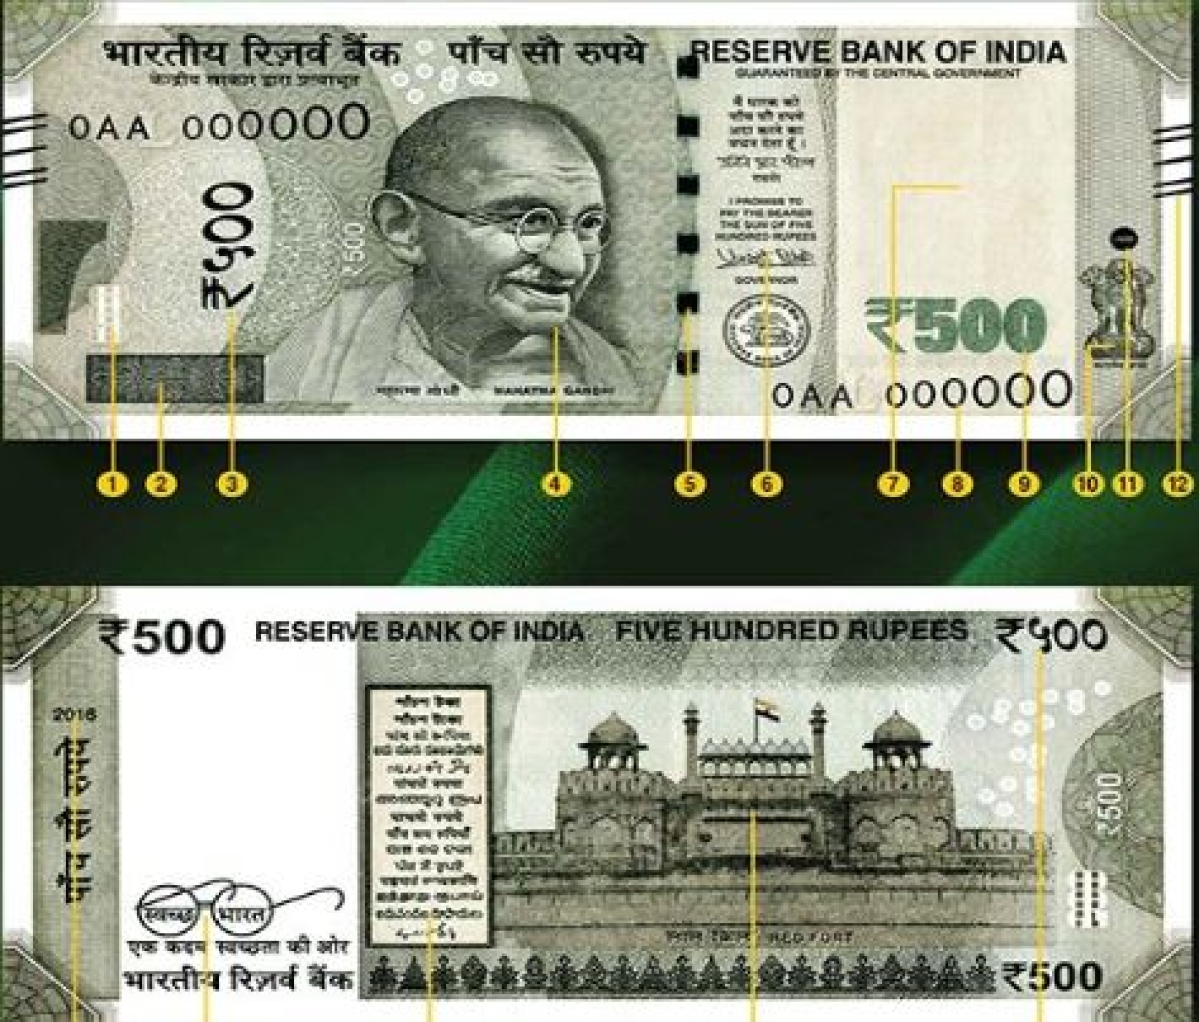 Is your Rs 500 note real or fake? Here's how to check